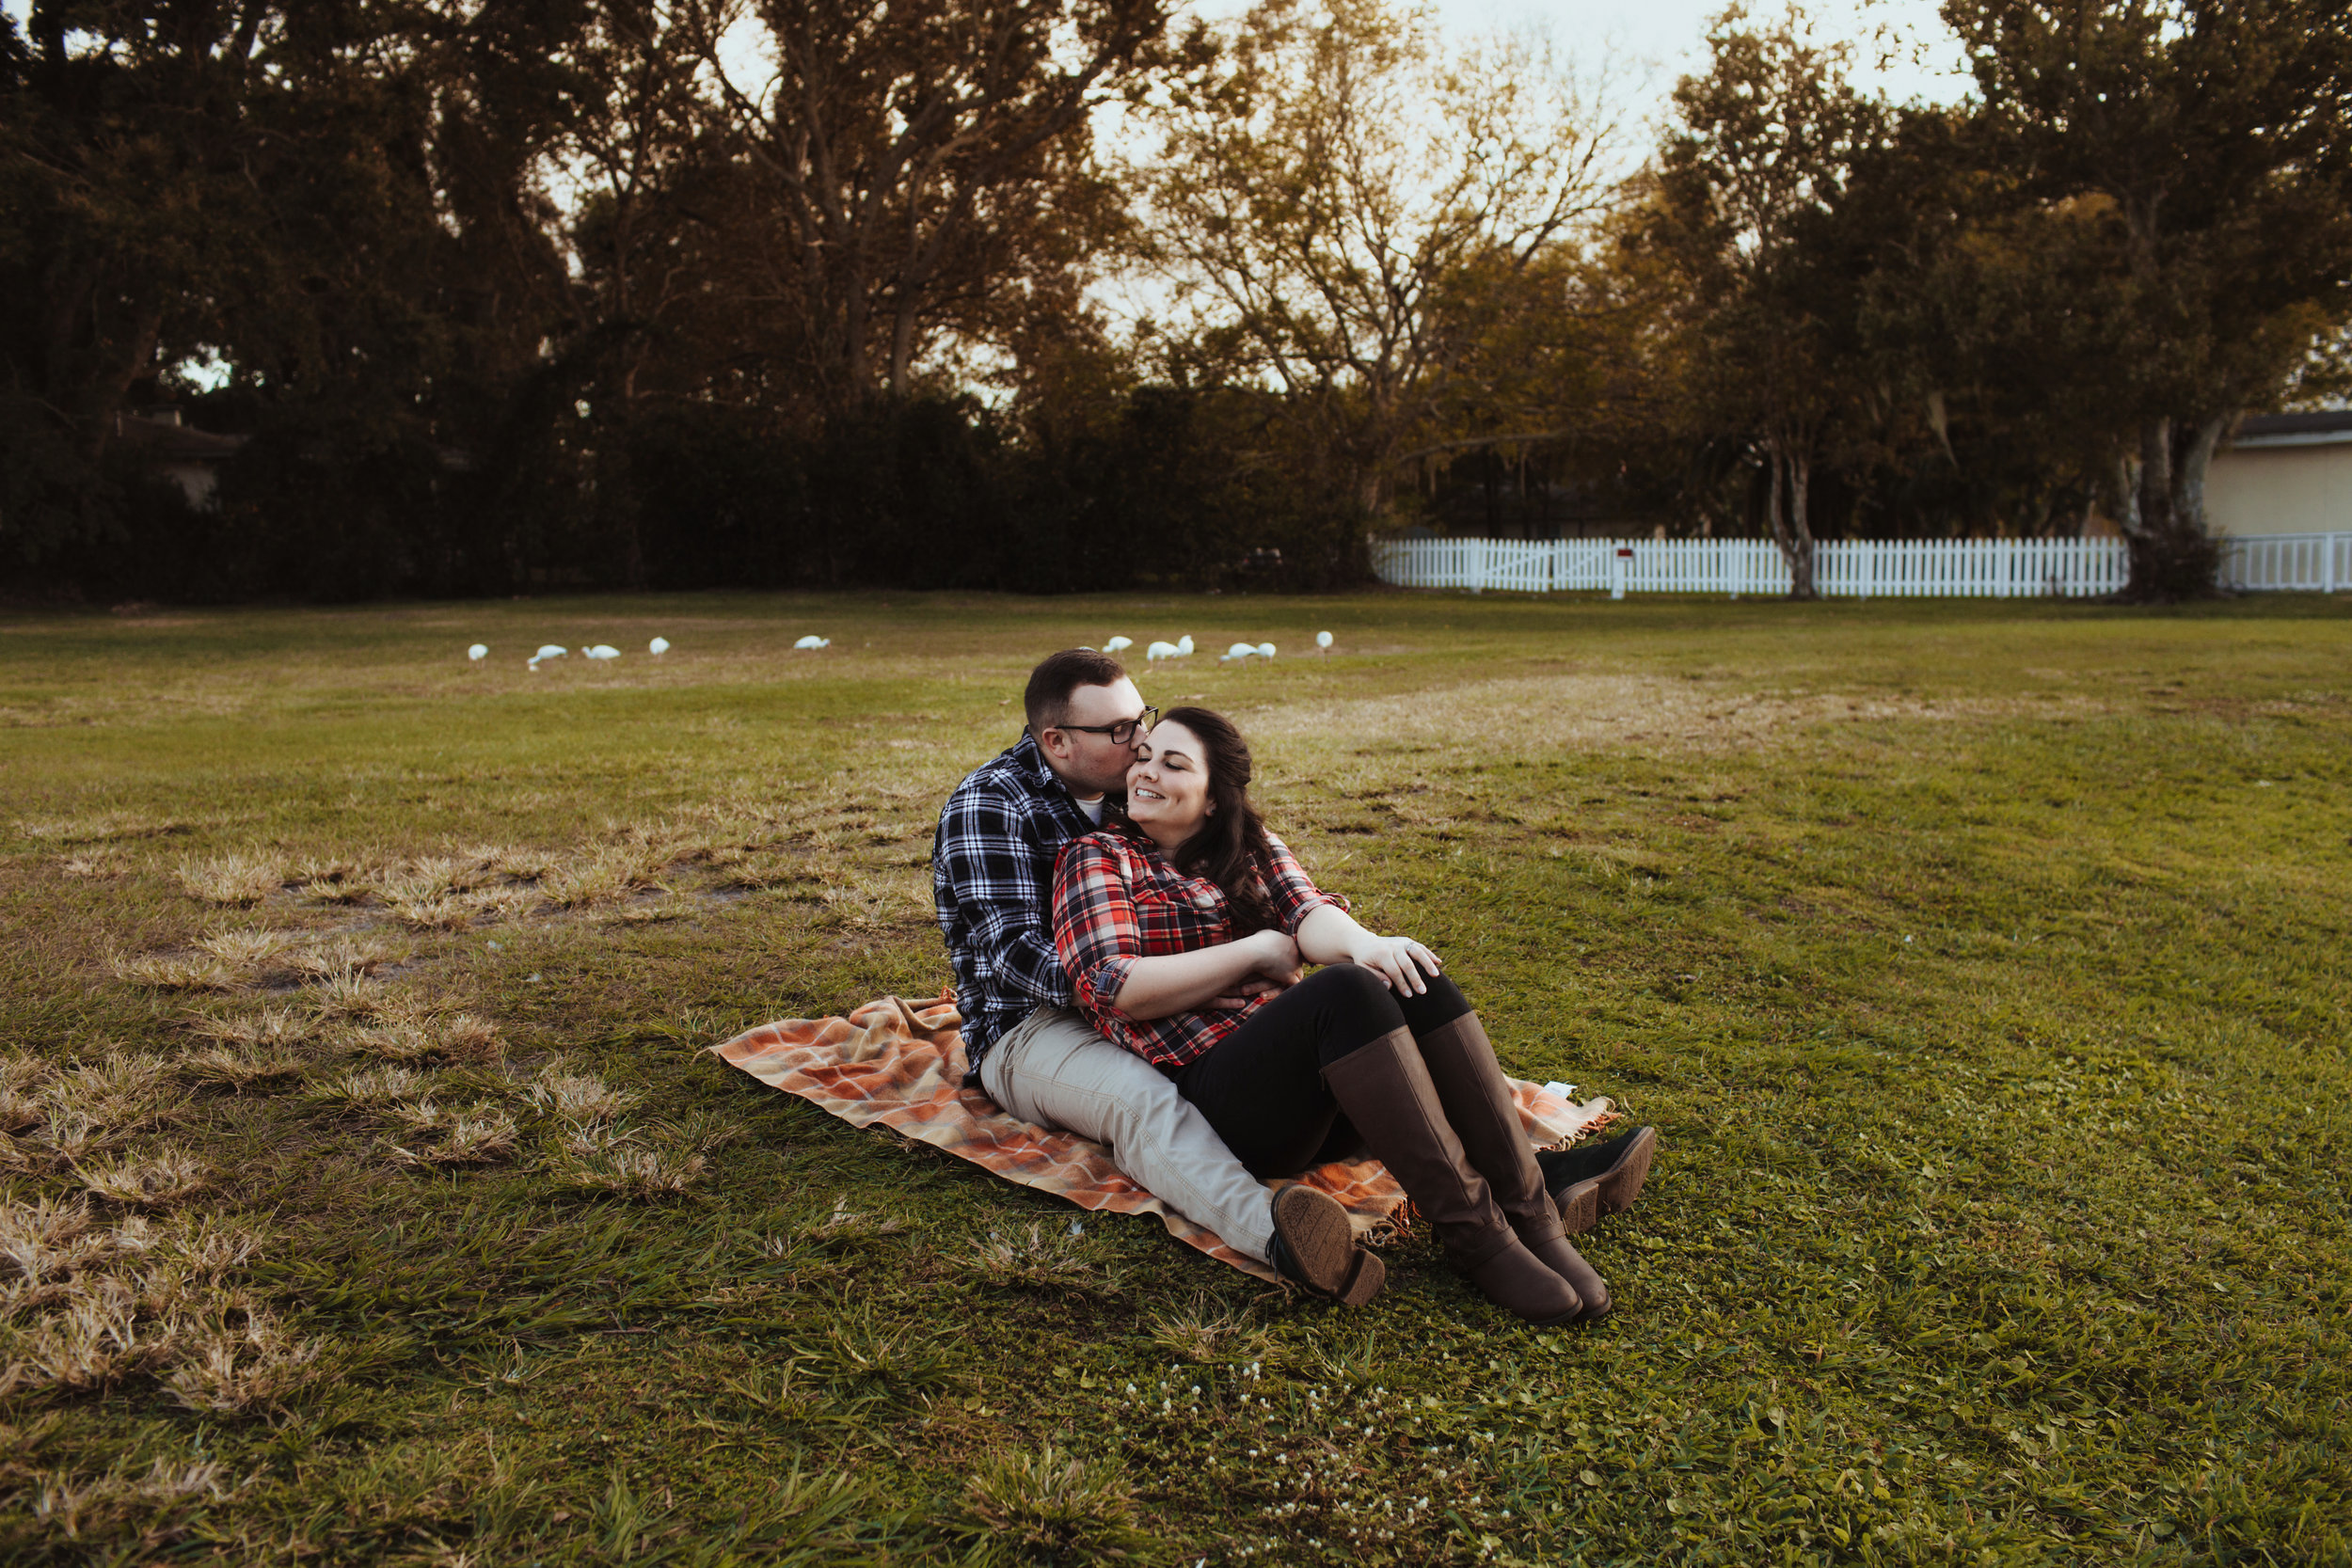 Engagement Session | Vanessa Boy |Vanessaboy.com | orlando,fl-189.com |final.jpg